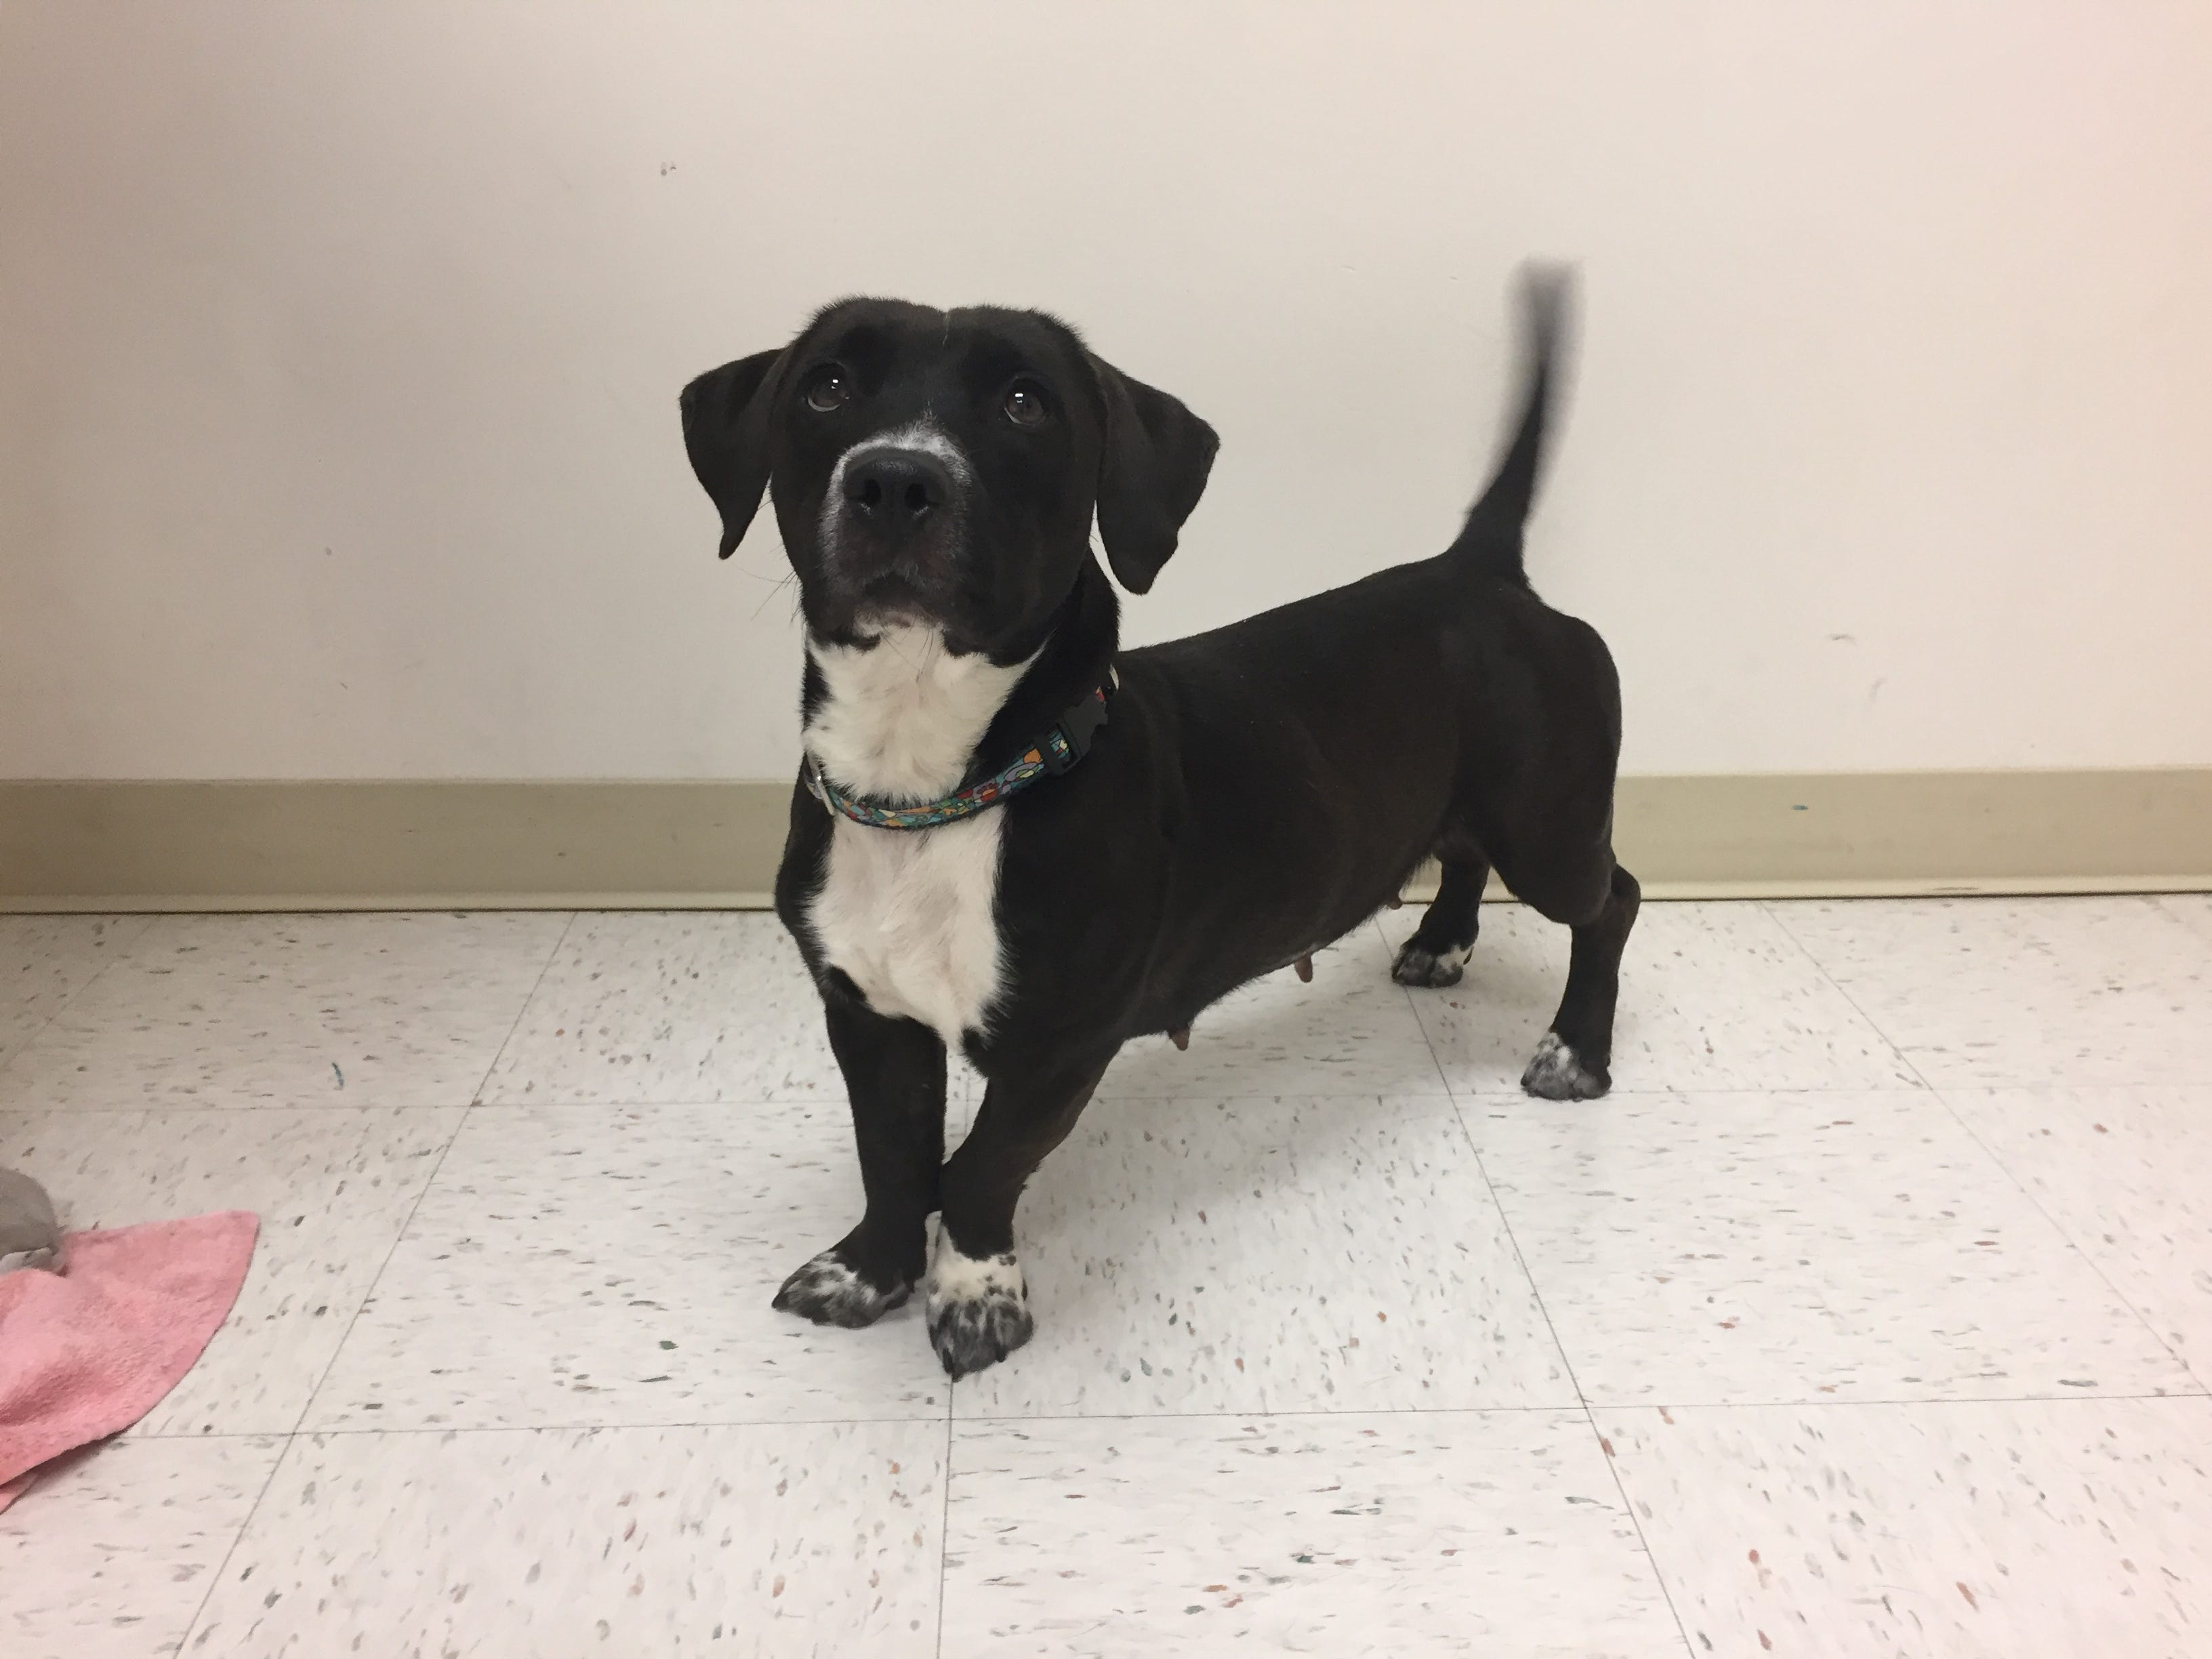 Clara Is A 4 Year Old Lab/basset Hound Mix. She Came In As A Stray, So We  Donu0027t Have Any Background Information On Her, But Those Short Little Legs  Kind Of ...